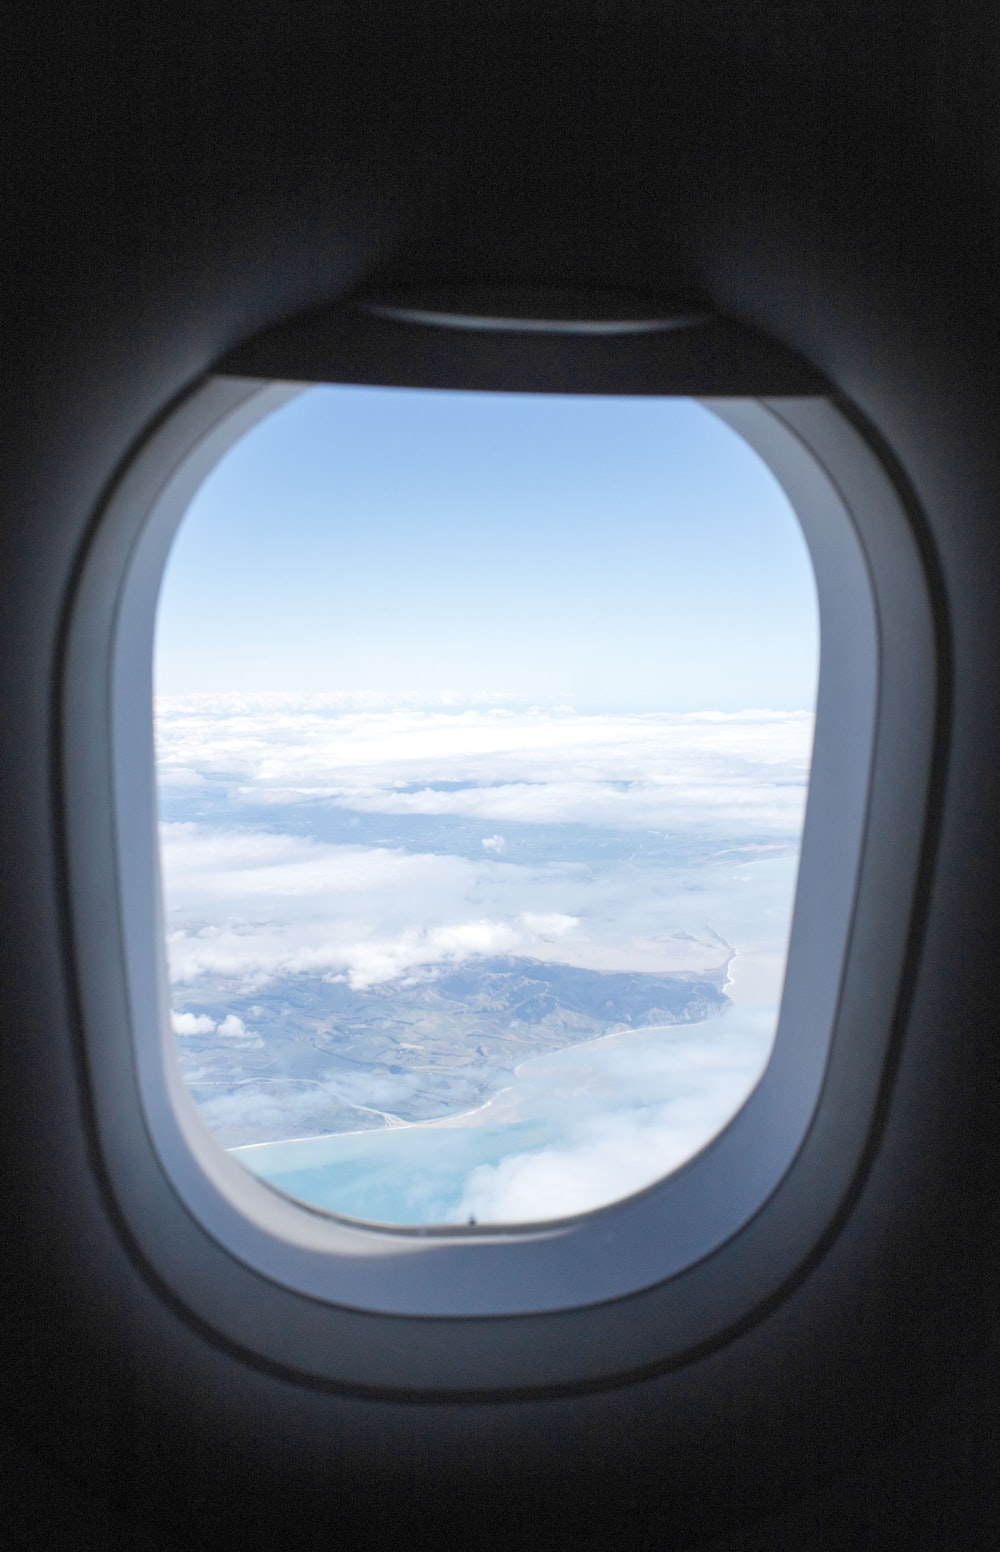 Incredible Window Porthole Airplane And Vehicle Hd Photo By Yousouf Beatyapartments Chair Design Images Beatyapartmentscom